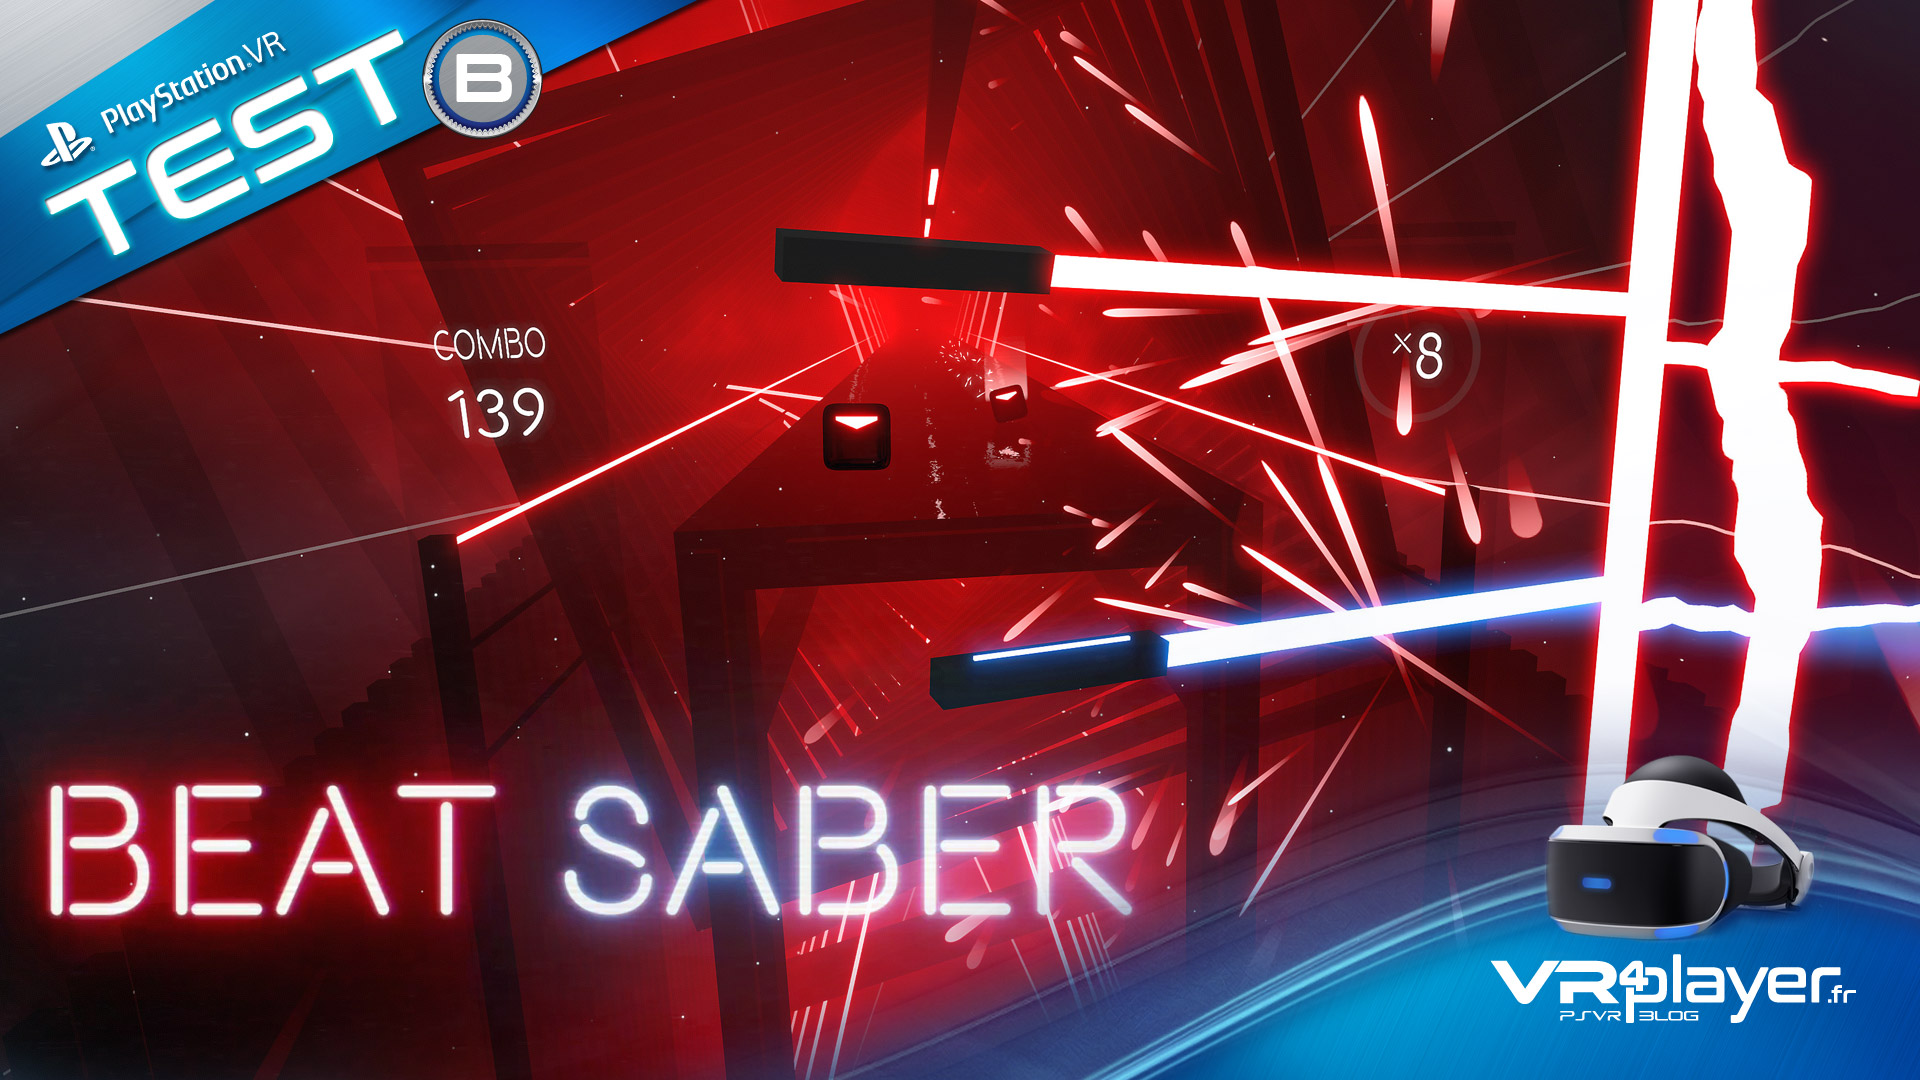 BEAT SABER en test sur PlayStation VR - vr4player.fr